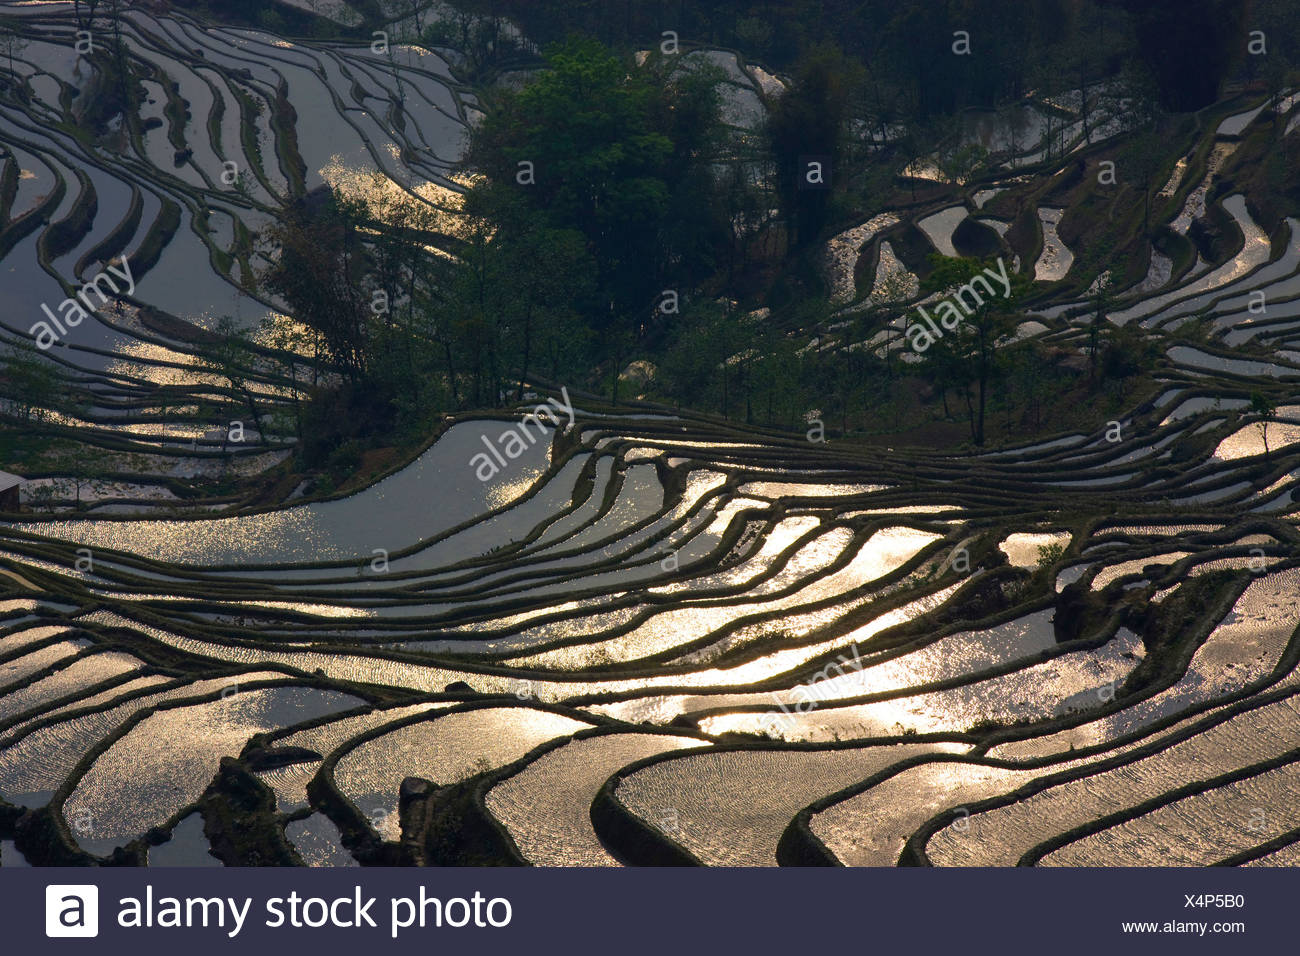 Yuanyang, China, Asia, rice terraces, growing of rice, rice fields, agriculture, water, trees, spring, reflection - Stock Image